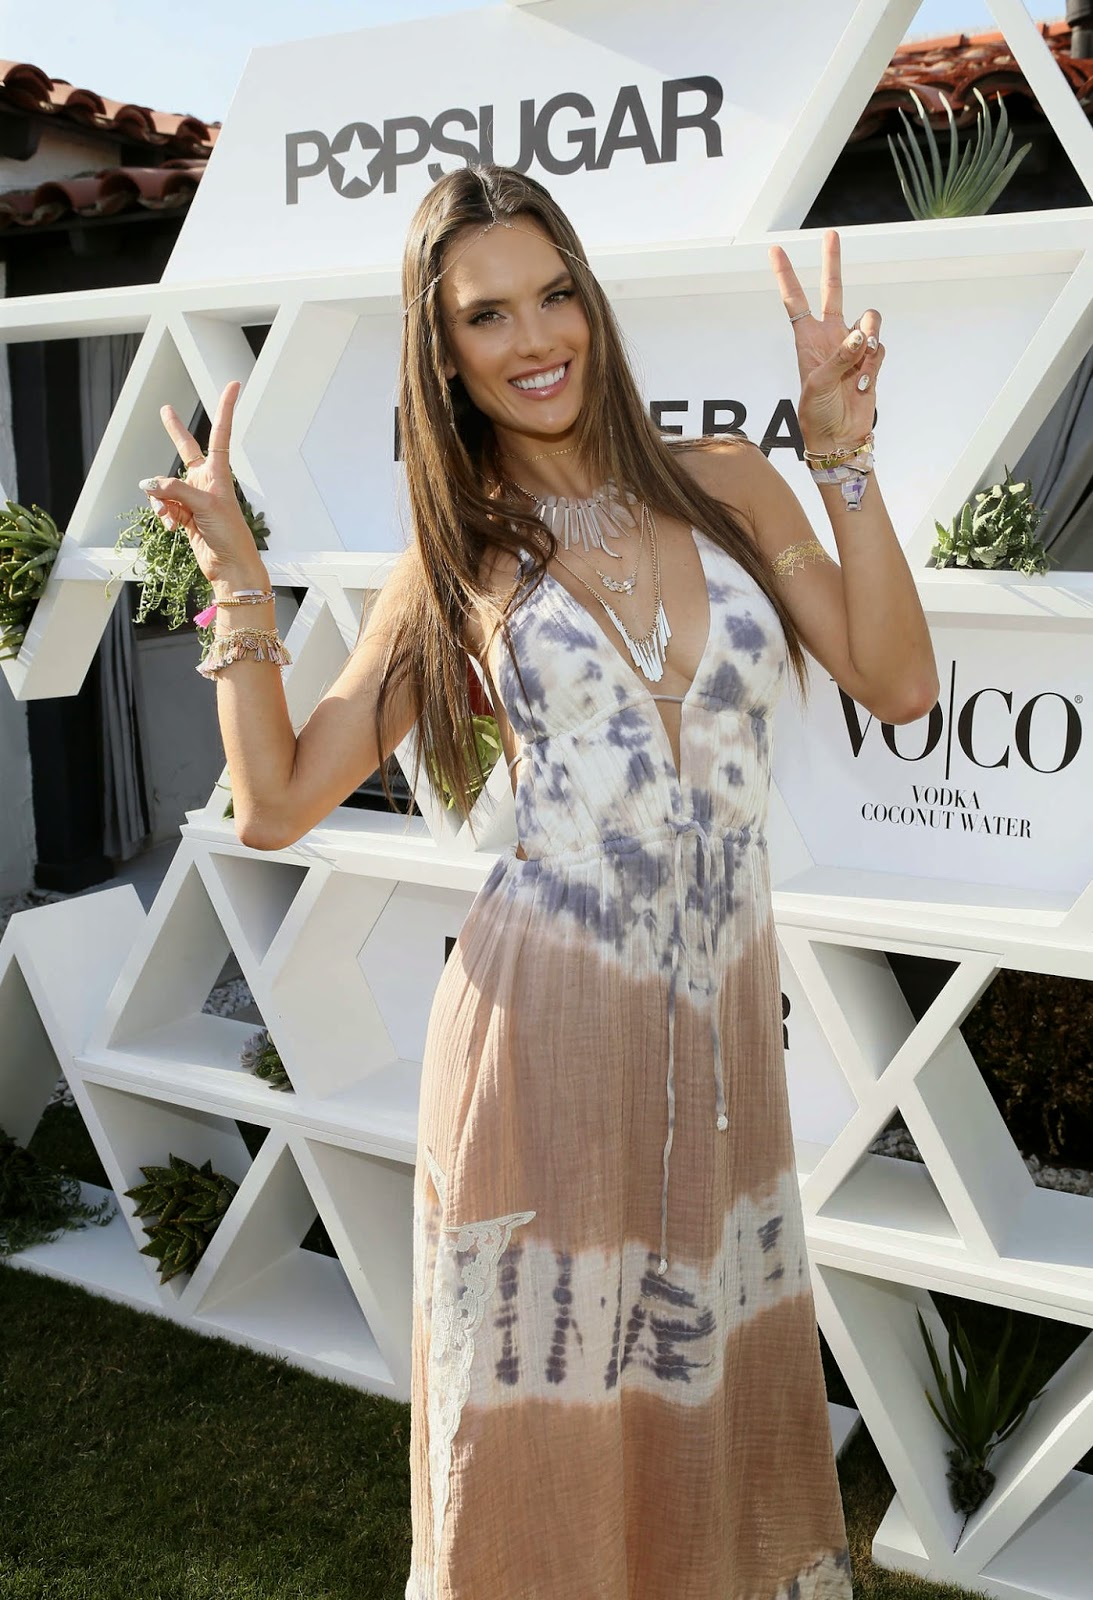 Alessandra Ambrosio is bohemian chic at the launch of jewellery collection at Palm Springs